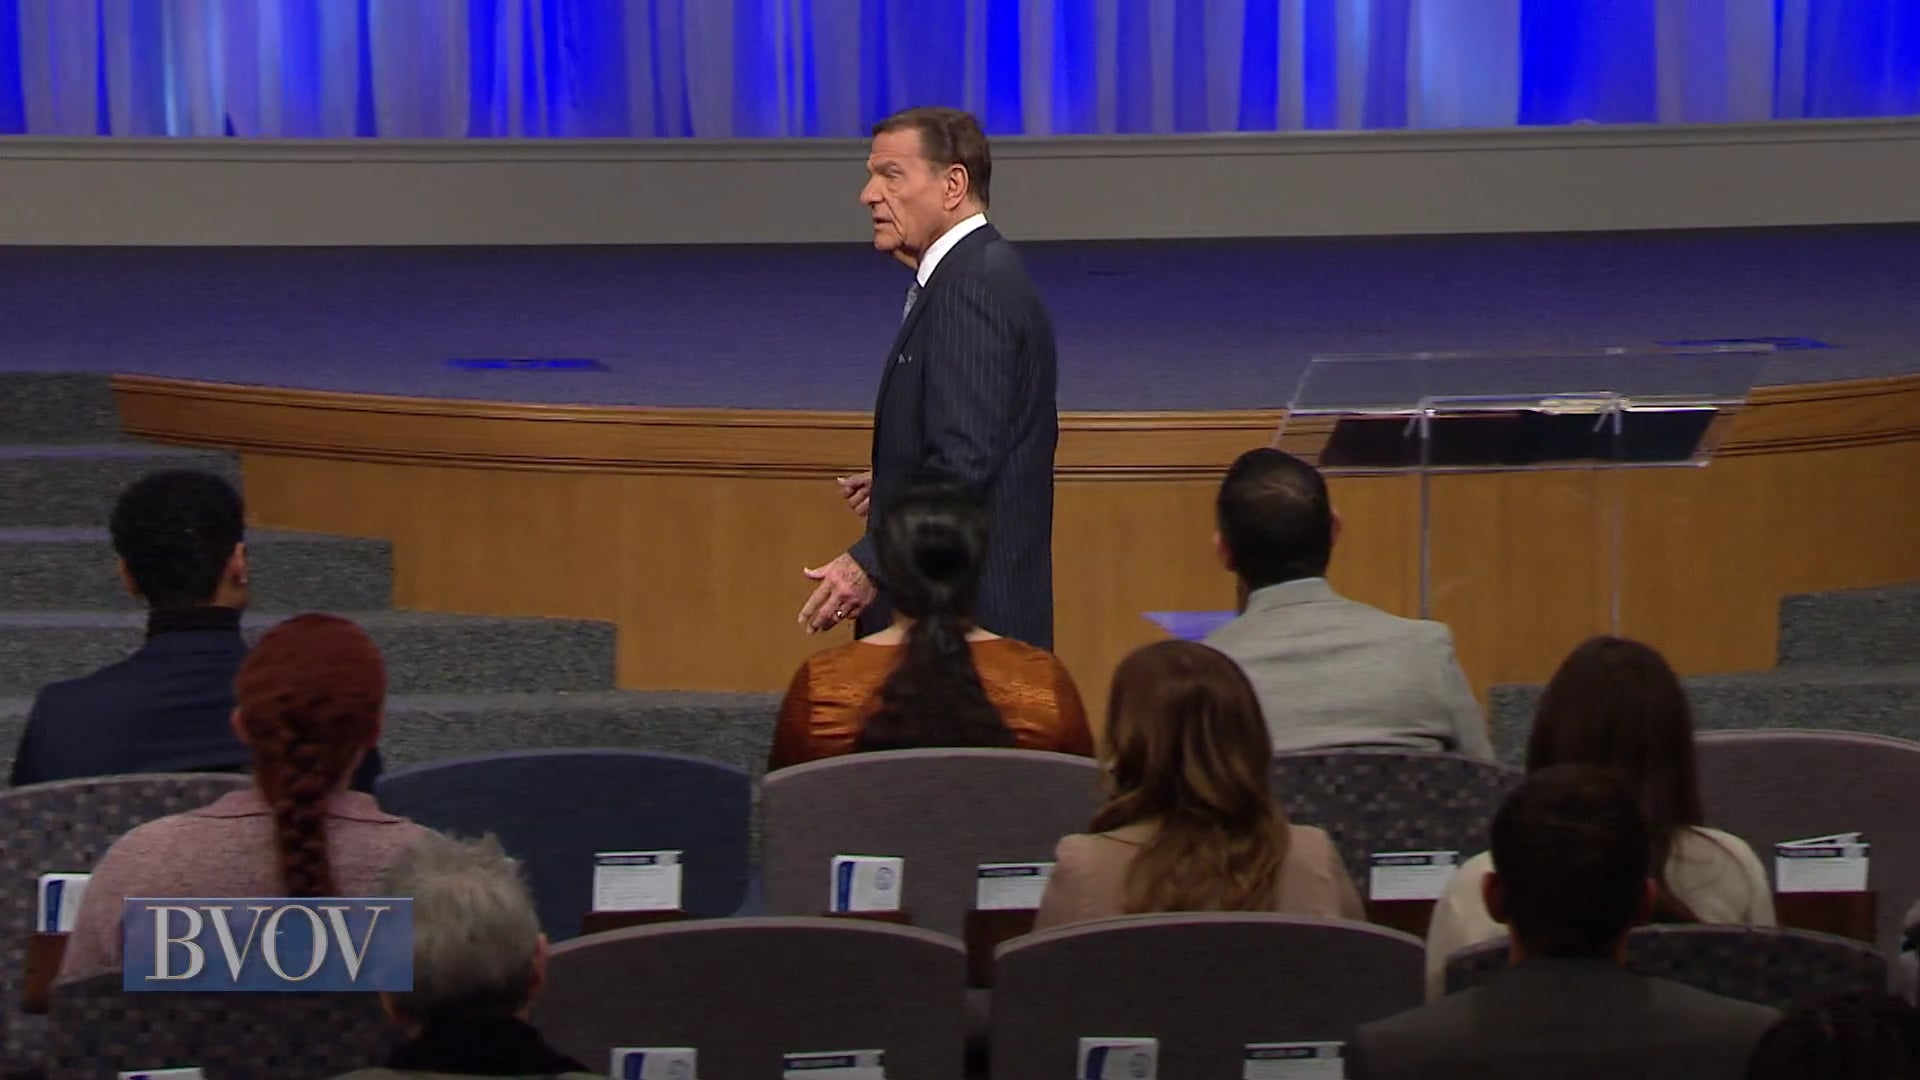 Why wasn't David afraid of Goliath? Join Kenneth Copeland on Believer's Voice of Victory as he teaches why David never feared Goliath. Learn how David always had covenant on his mind. He knew his covenant would do the fighting for him, and he focused his heart on the reward, not the fight. You can do the same—trust that your covenant will fight for you!